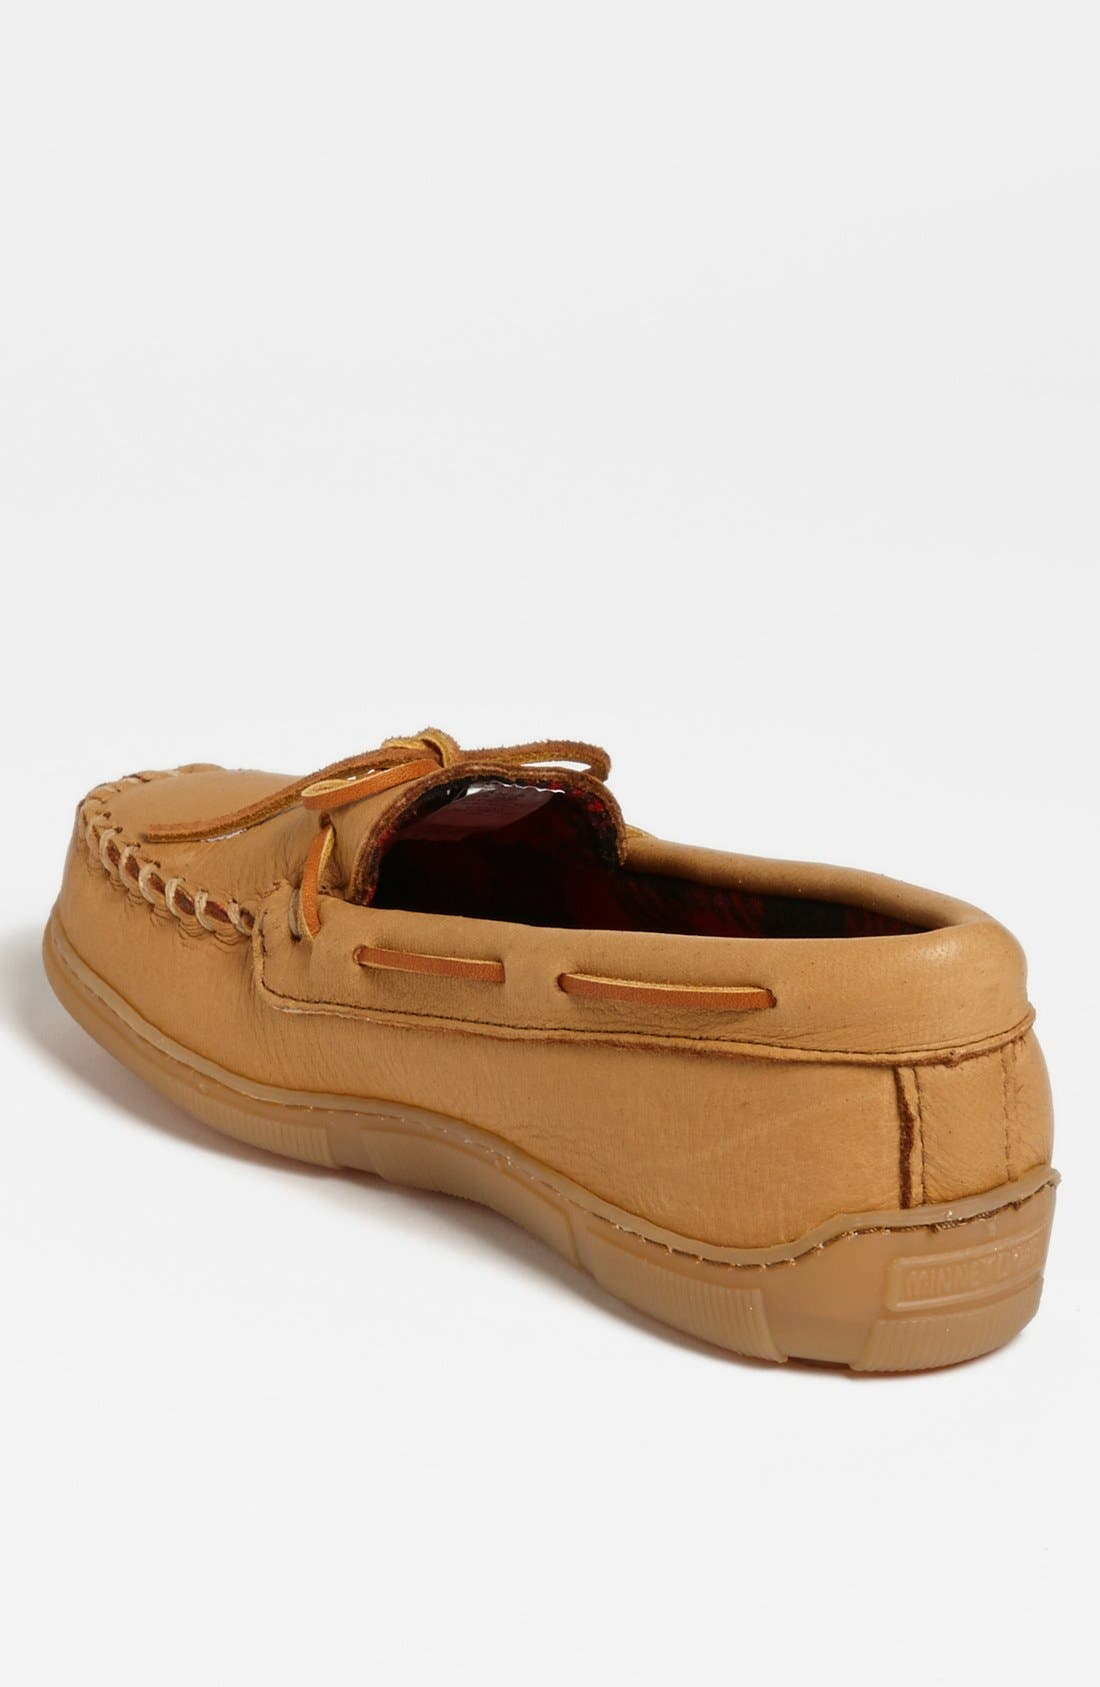 Moosehide Moccasin,                             Alternate thumbnail 2, color,                             NATURAL MOOSE